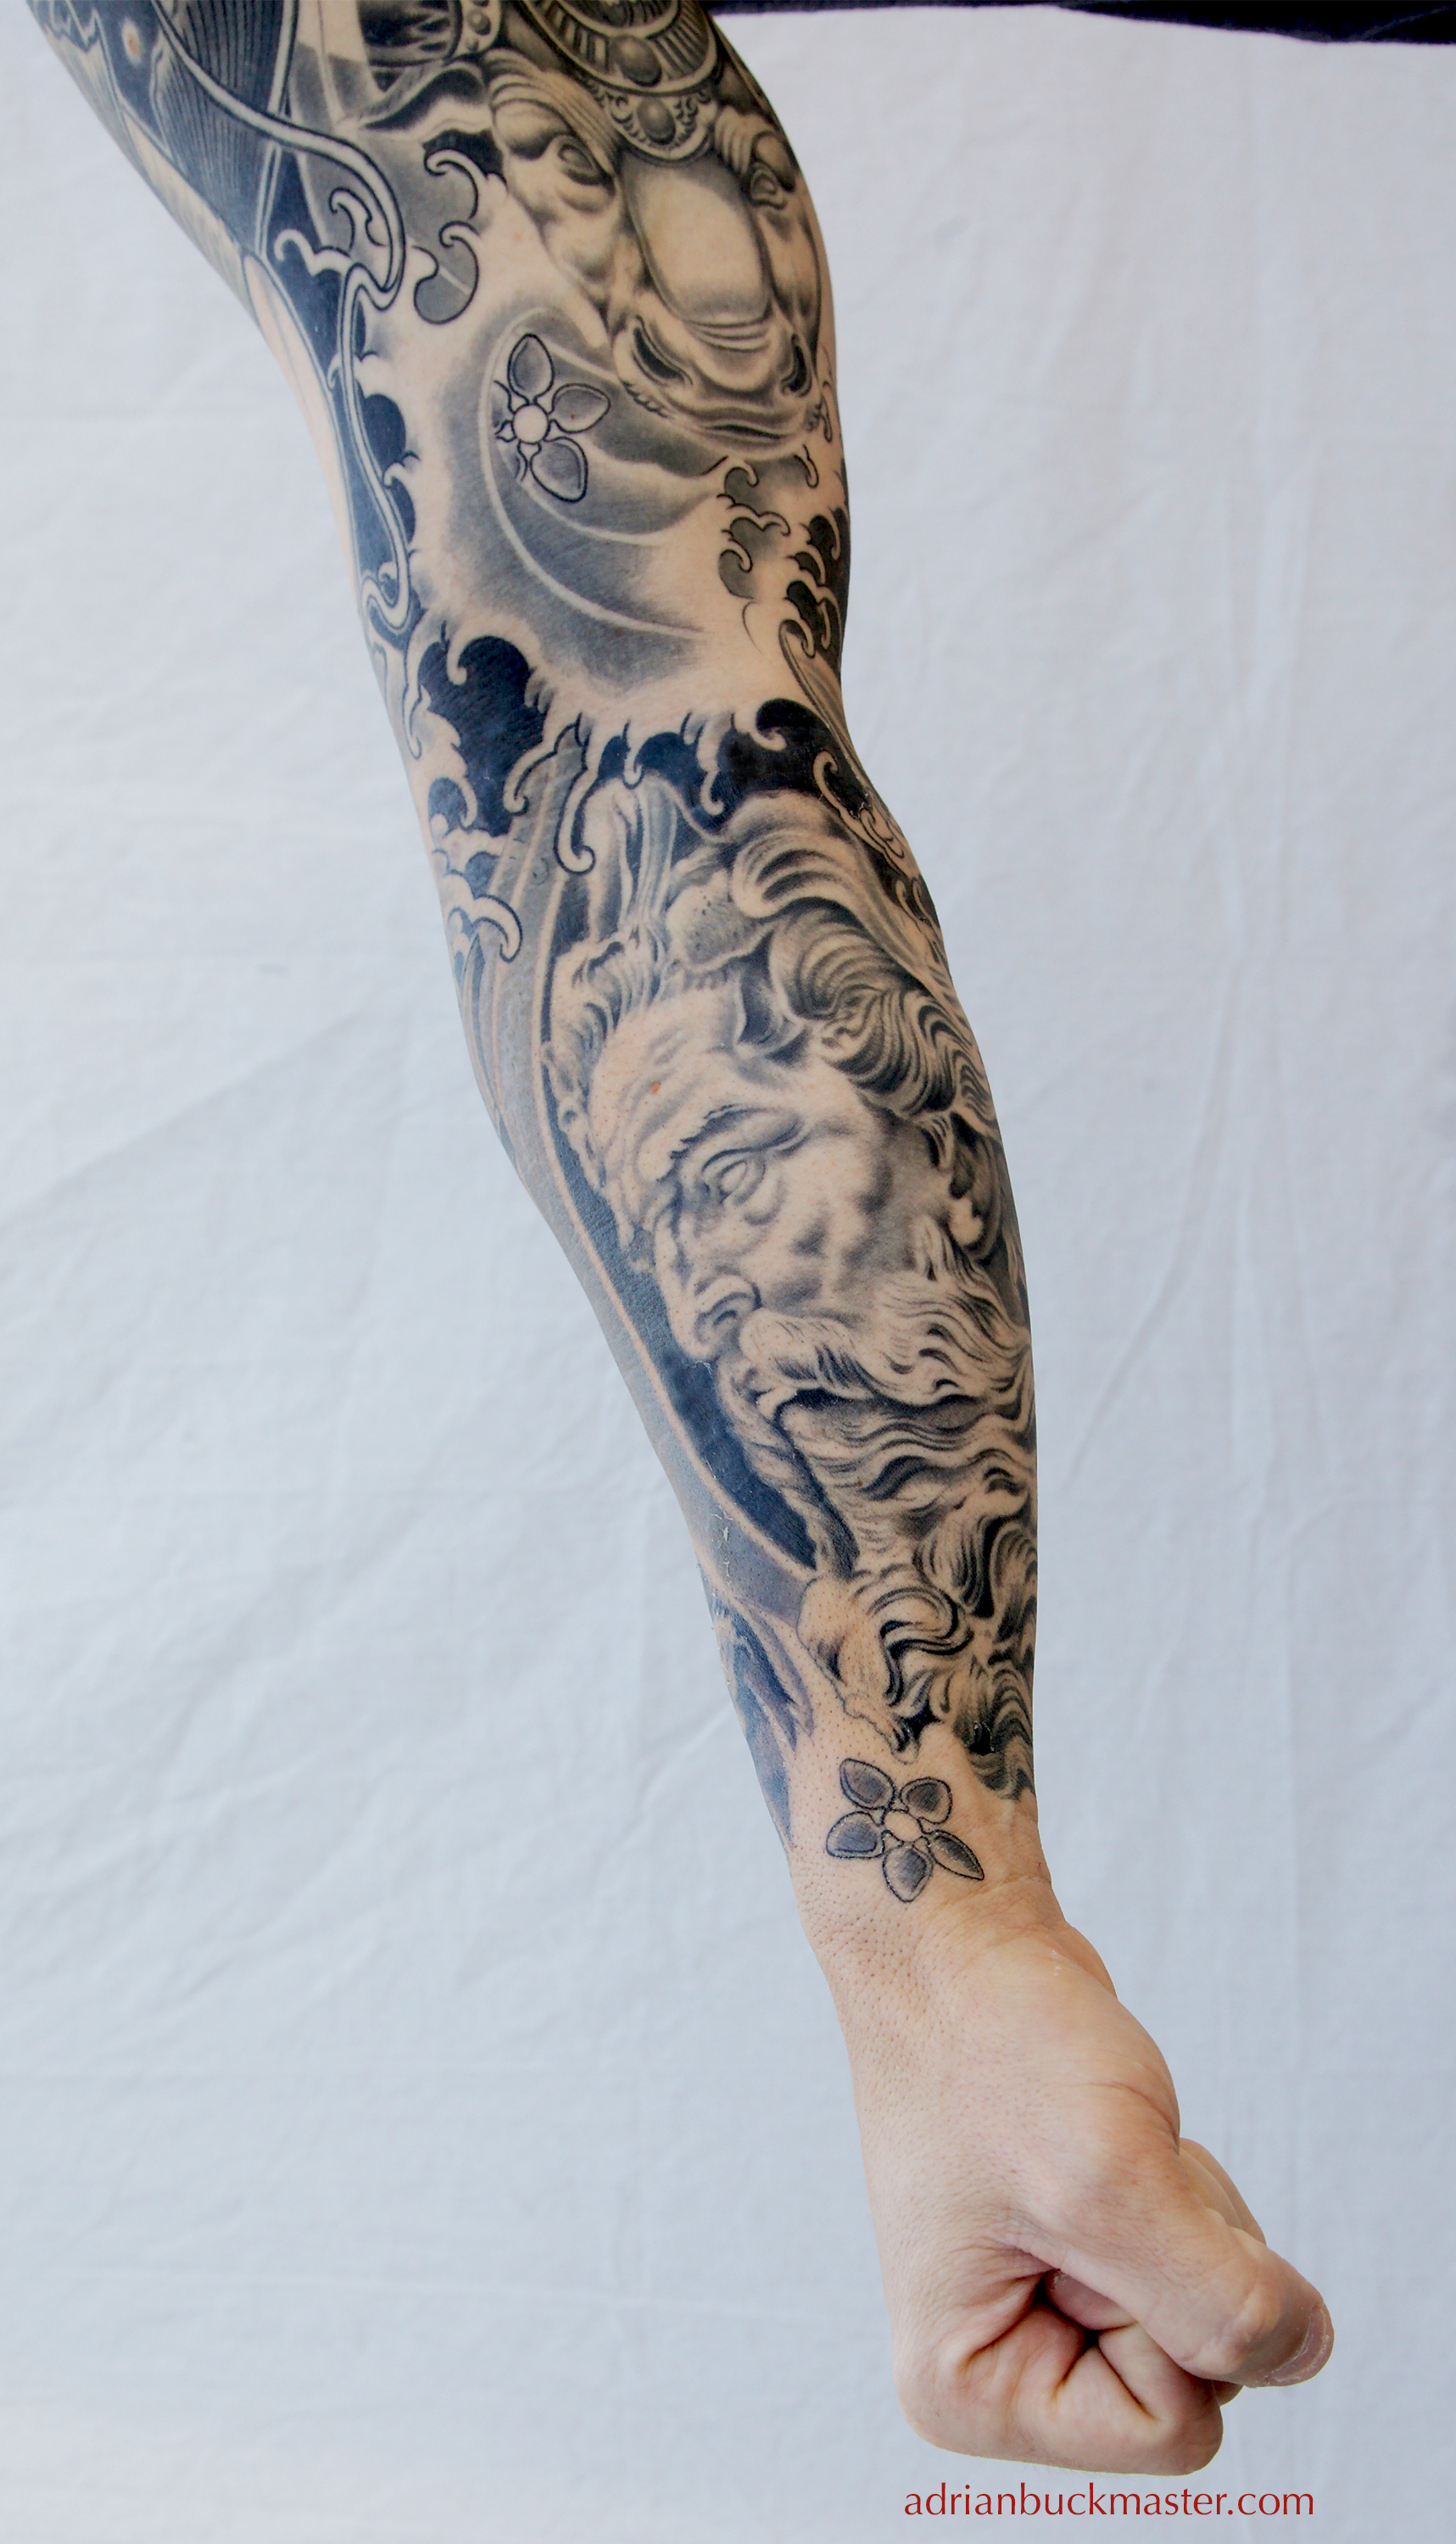 Rob-TWI-Adrian-inside-sleeve-with-fist